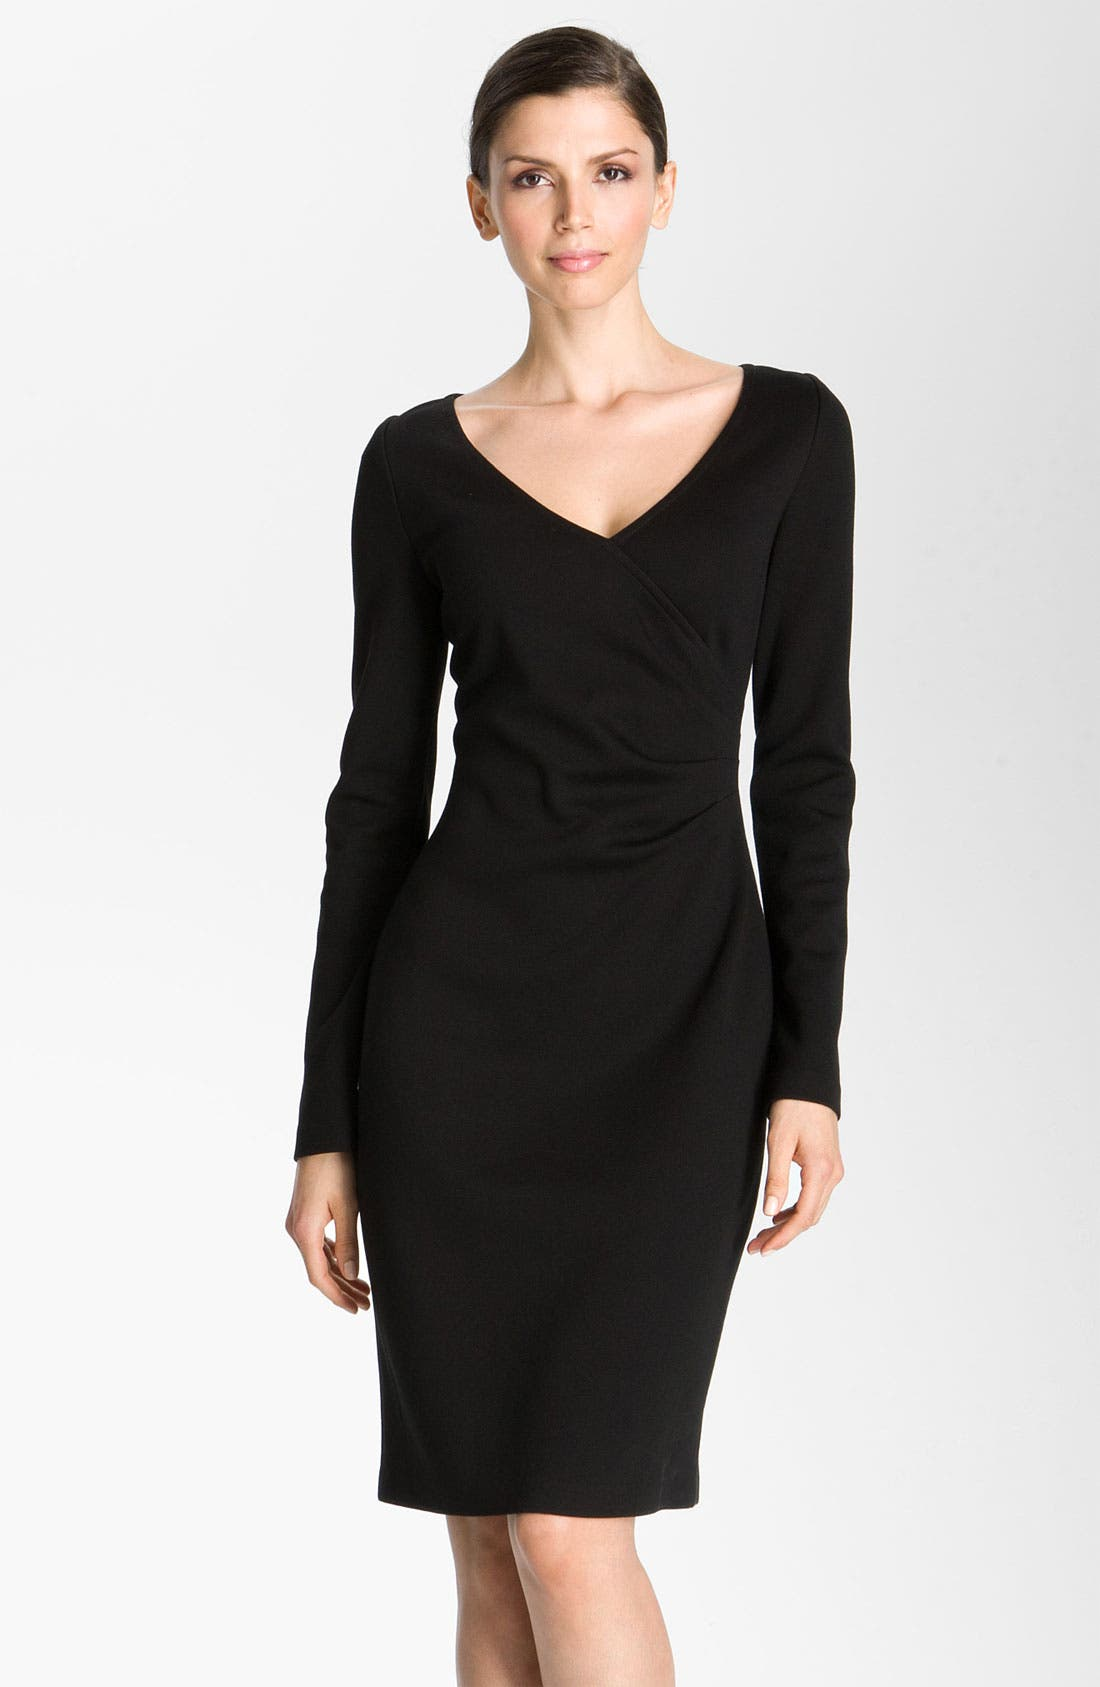 Main Image - St. John Collection Milano Knit Faux Wrap Dress